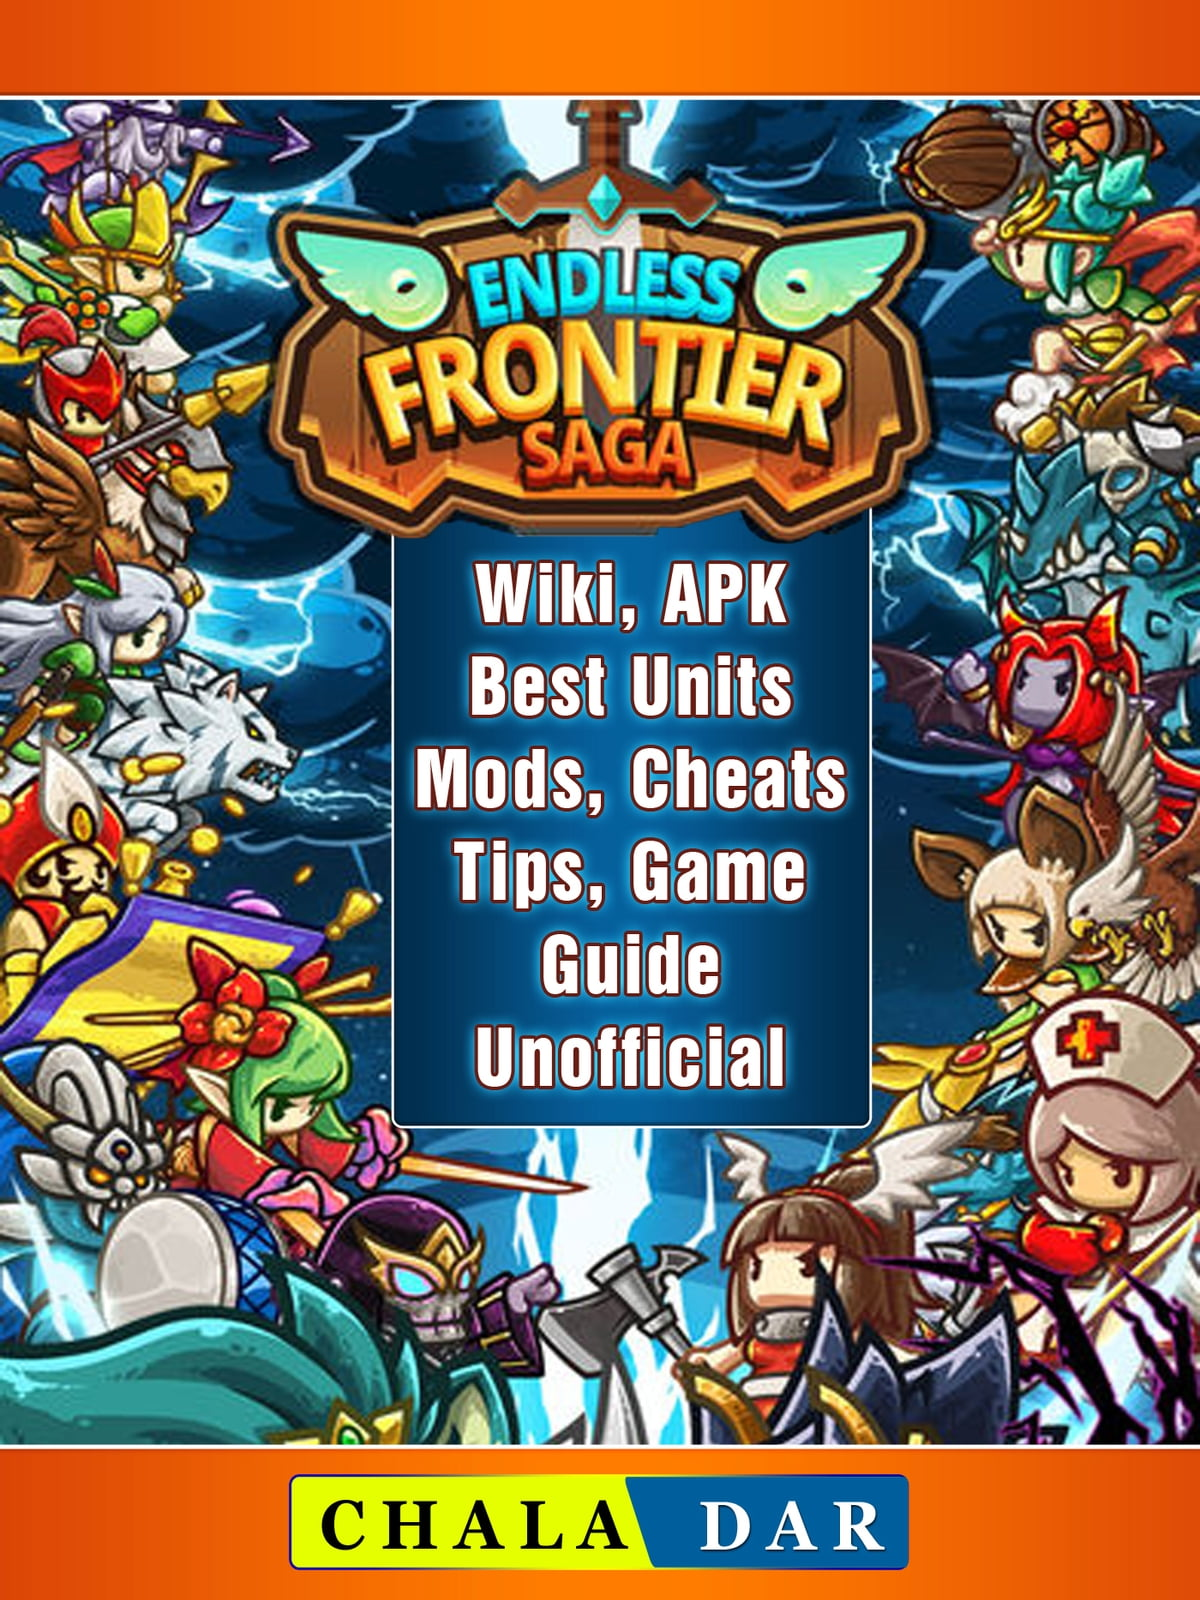 Endless Frontier Saga Wiki Apk Best Units Mods Cheats Tips